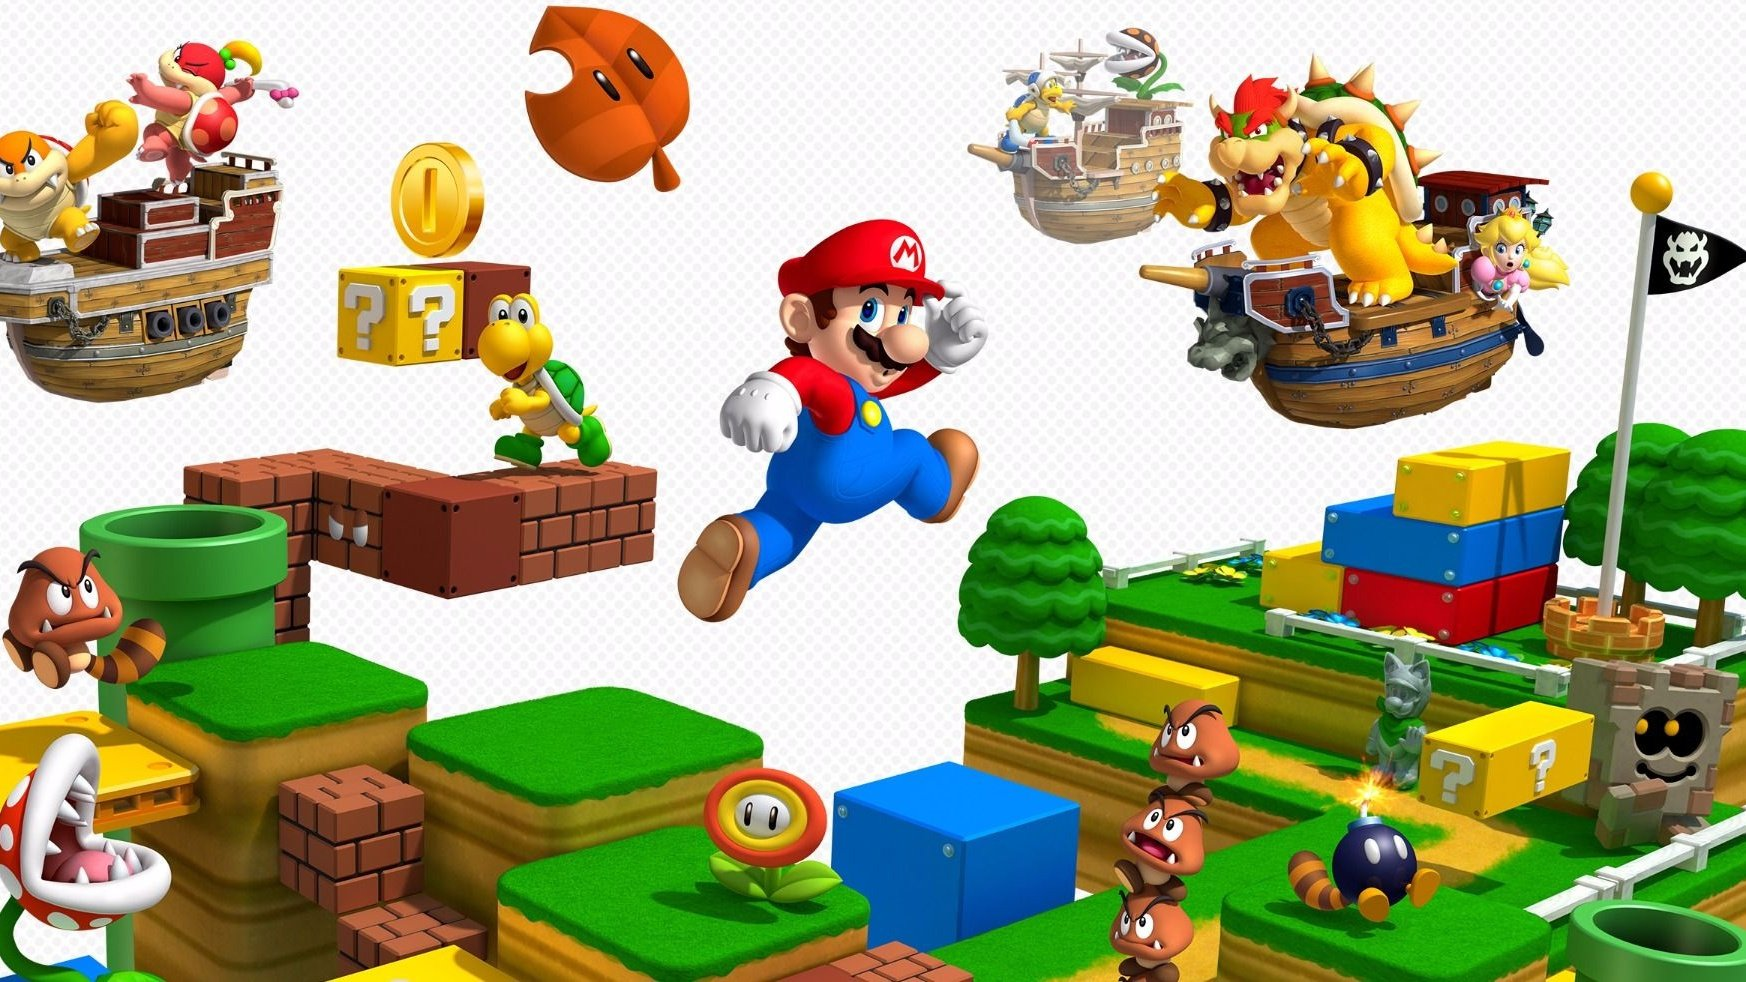 Get Discounts On Super Mario Games And More With My Nintendo Rewards (Europe)